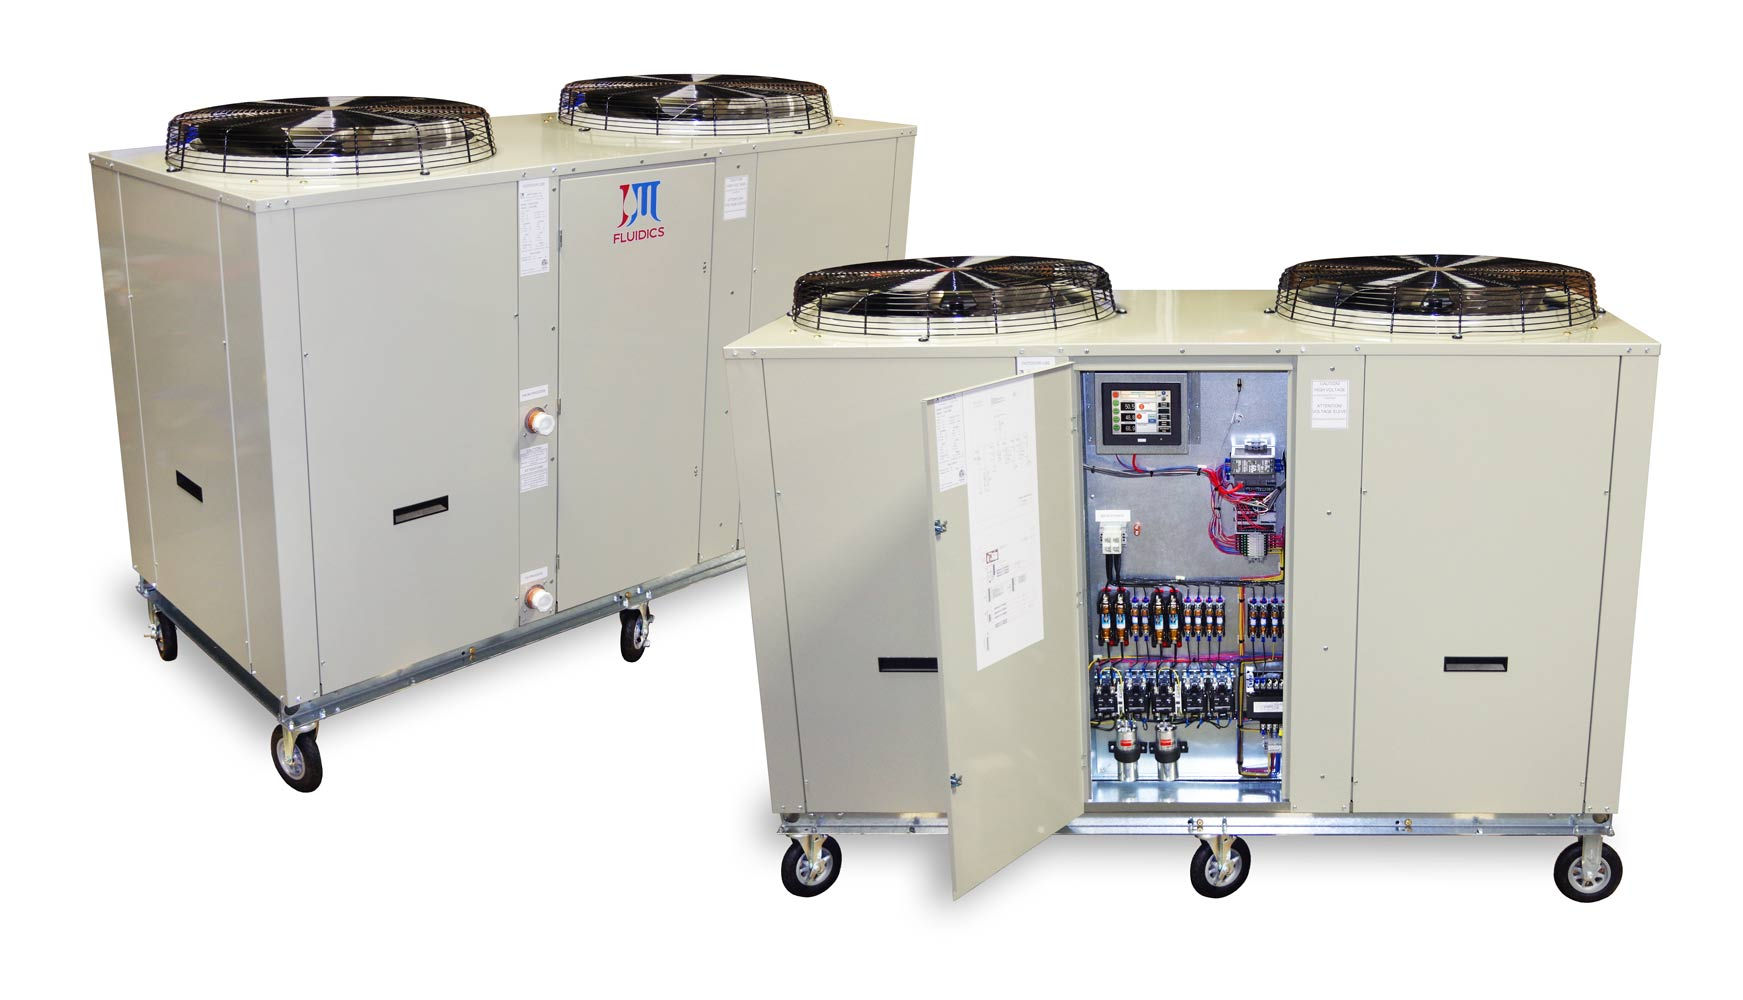 Ice Rink Chillers by J&M Fluidics, Inc.